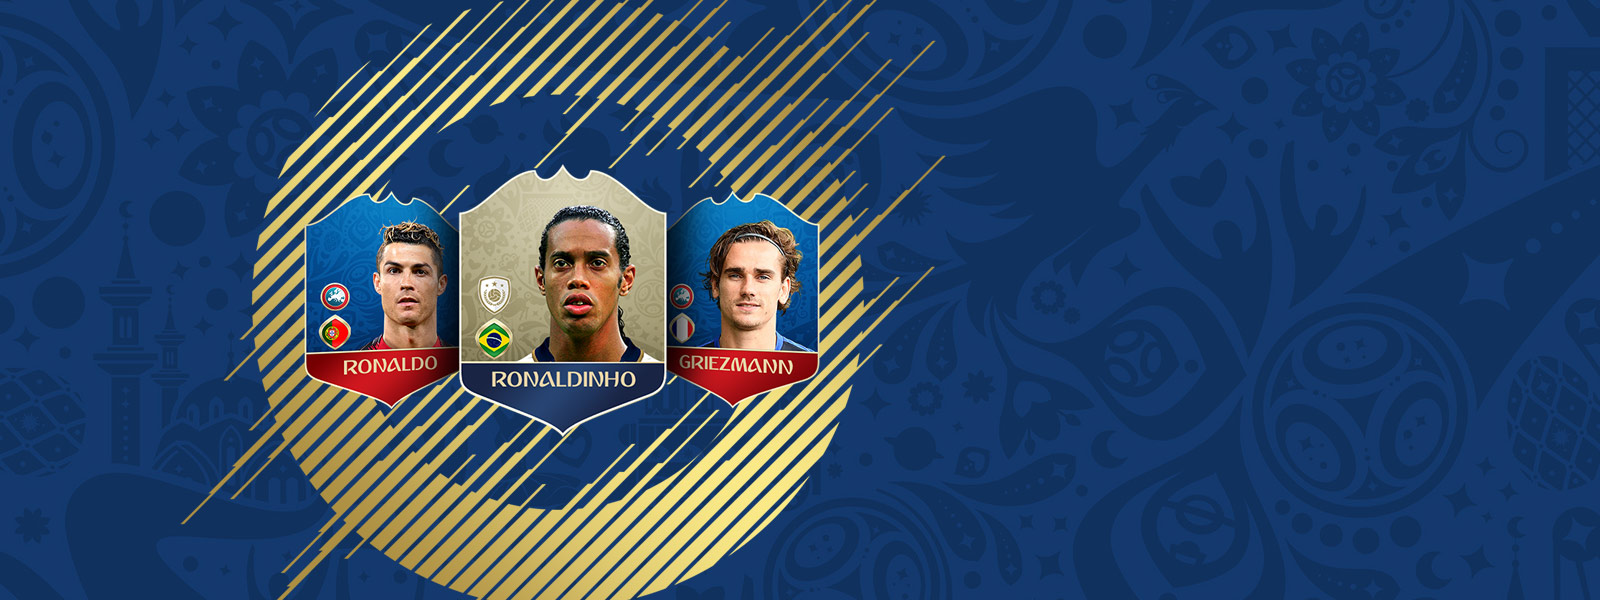 Images des badges FIFA Ultimate Team pour Ronaldo, Ronaldinho et Griezmann